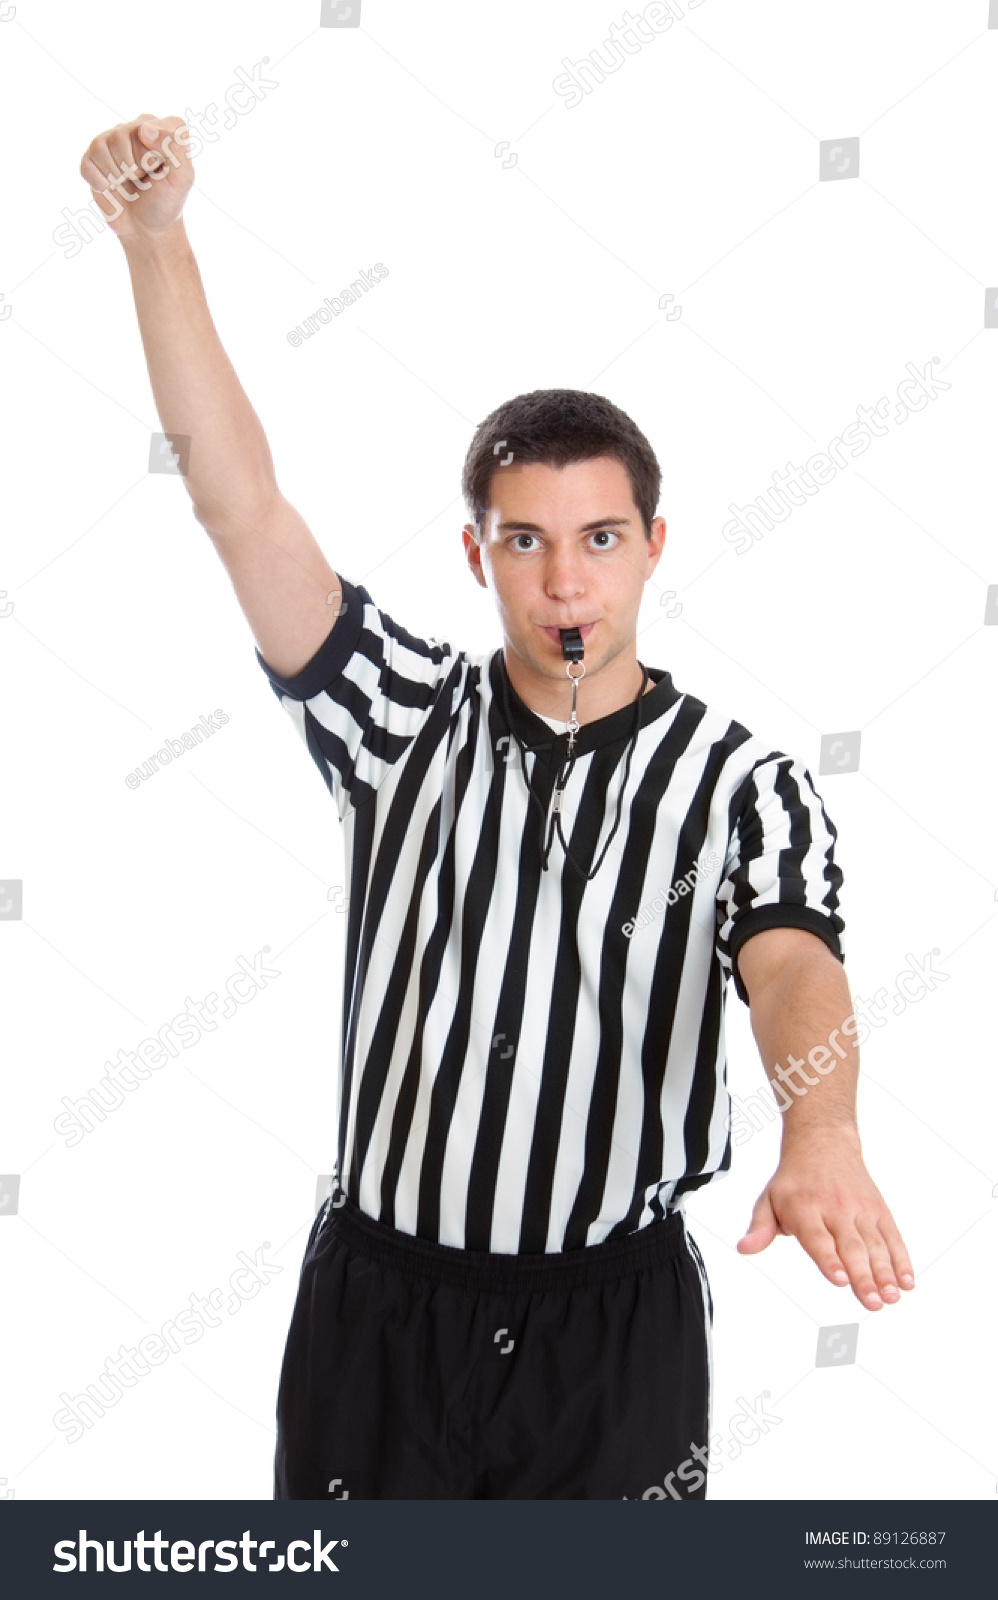 Teenage Basketball Referee Giving Sign For Foul Stock Photo 89126887 : Shutterstock